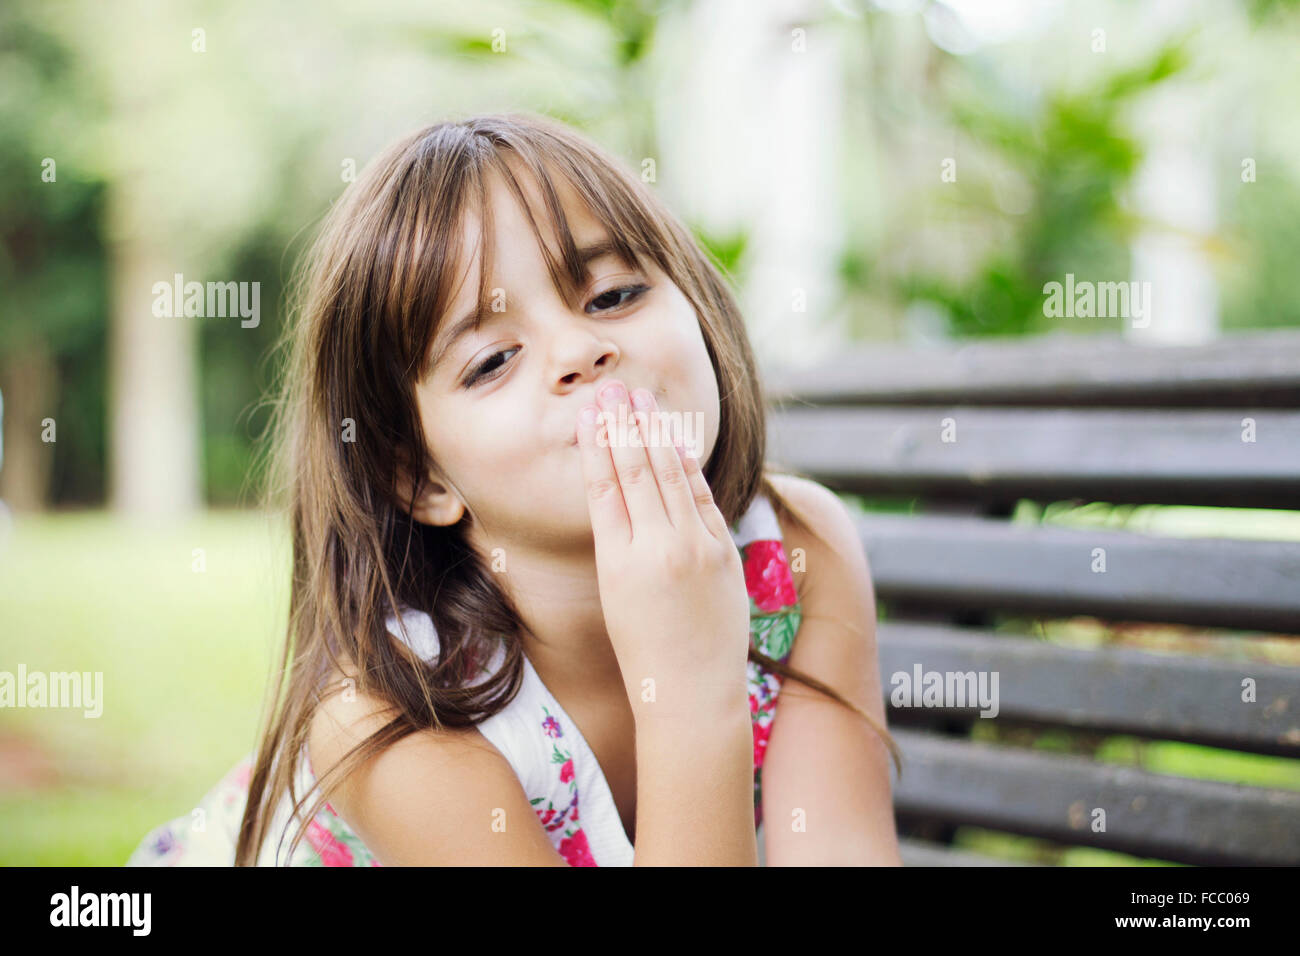 Portrait Of Cute Girl Blowing A Kiss - Stock Image